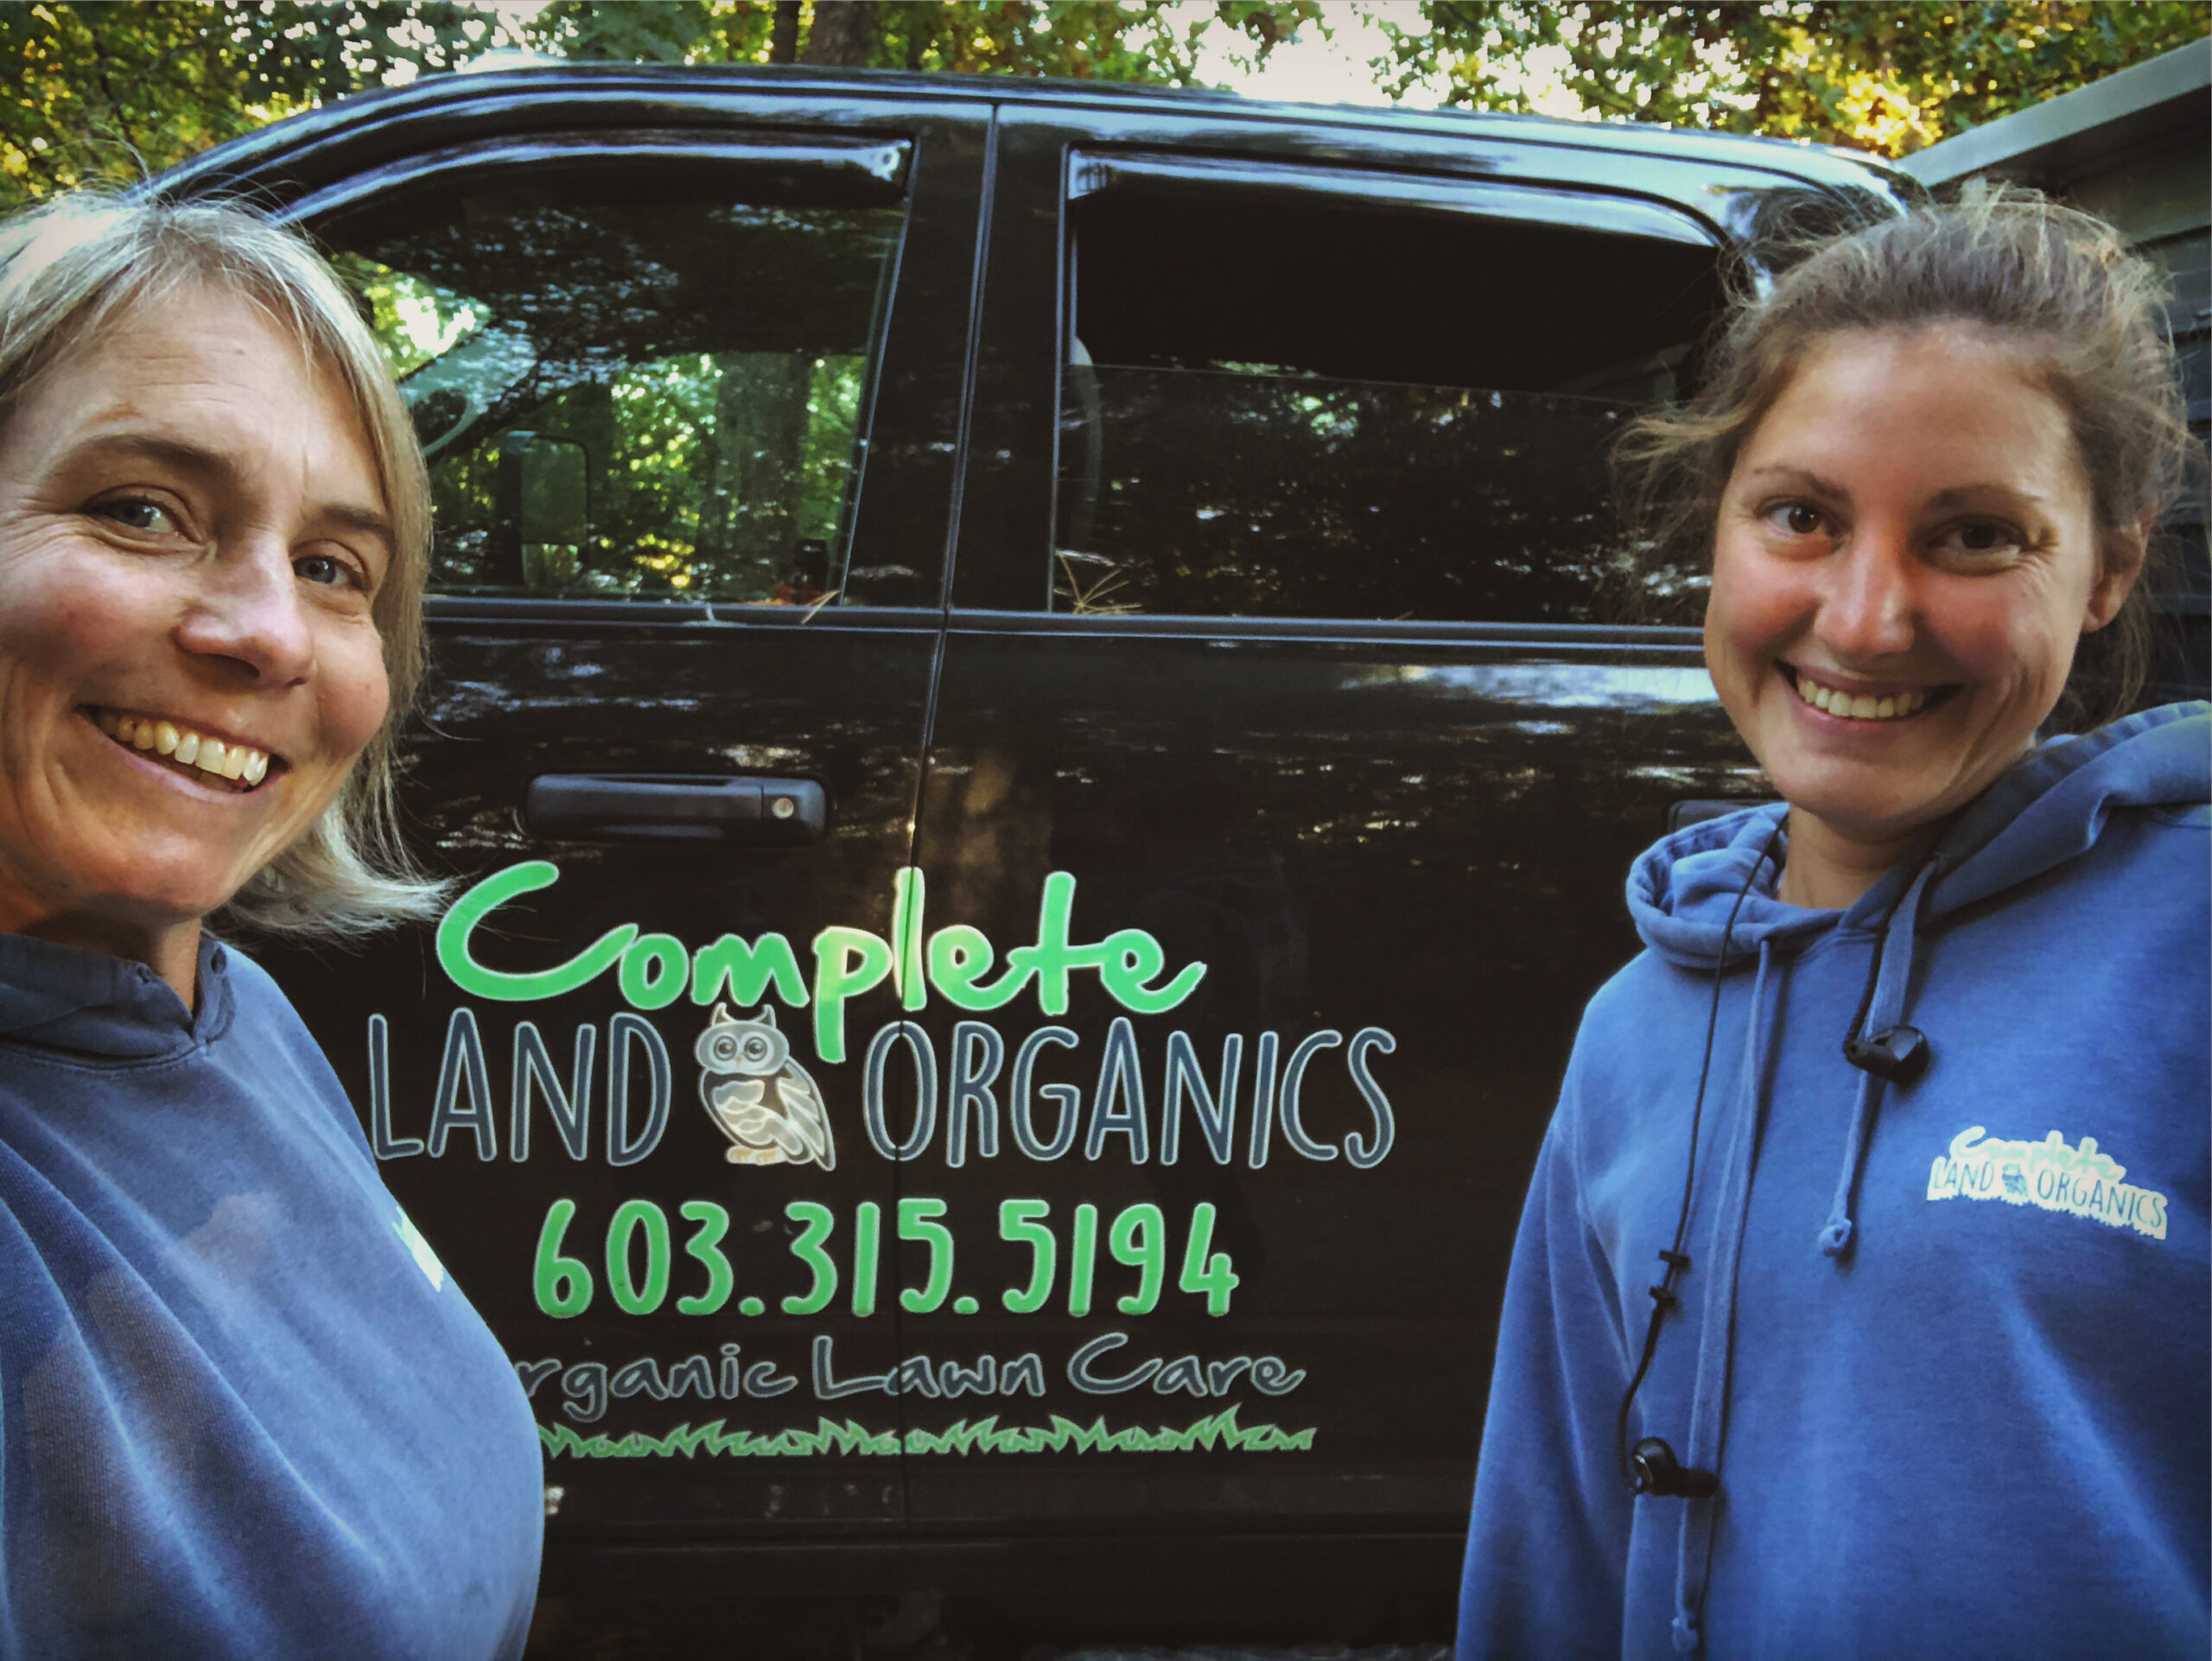 NH Organic Lawn Care Services from Complete Land Organics